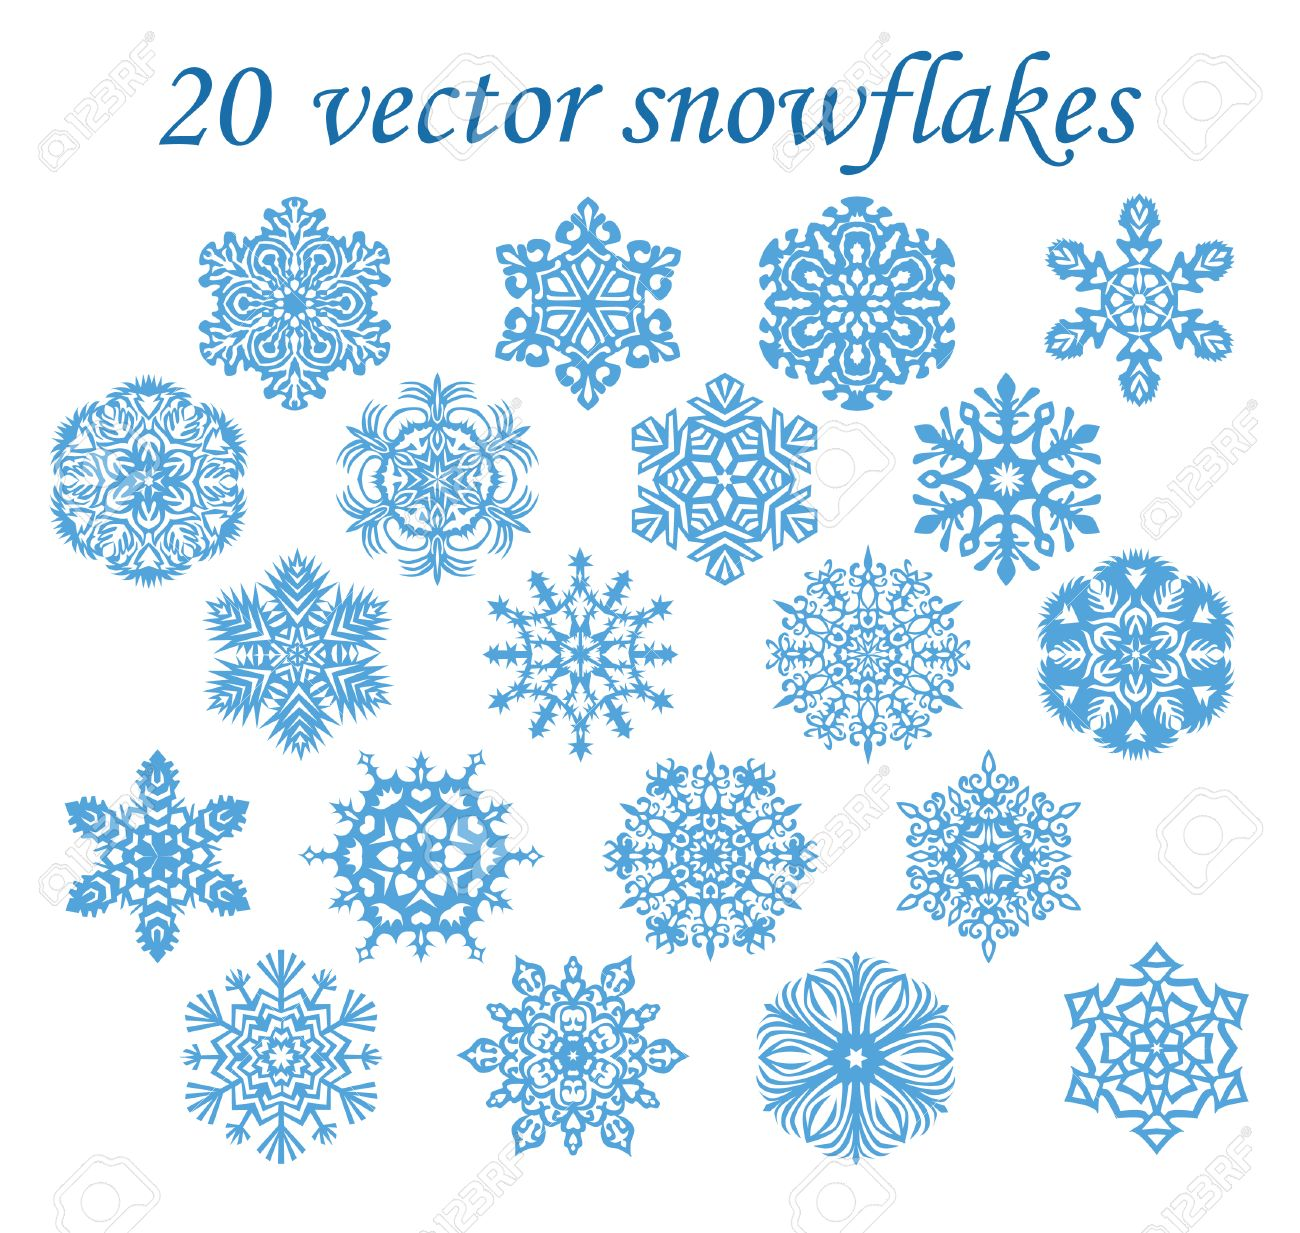 Vector Set Blue Snowflakes On Transparent Background Royalty Free ... for Snowflake Clipart Transparent Background  104xkb